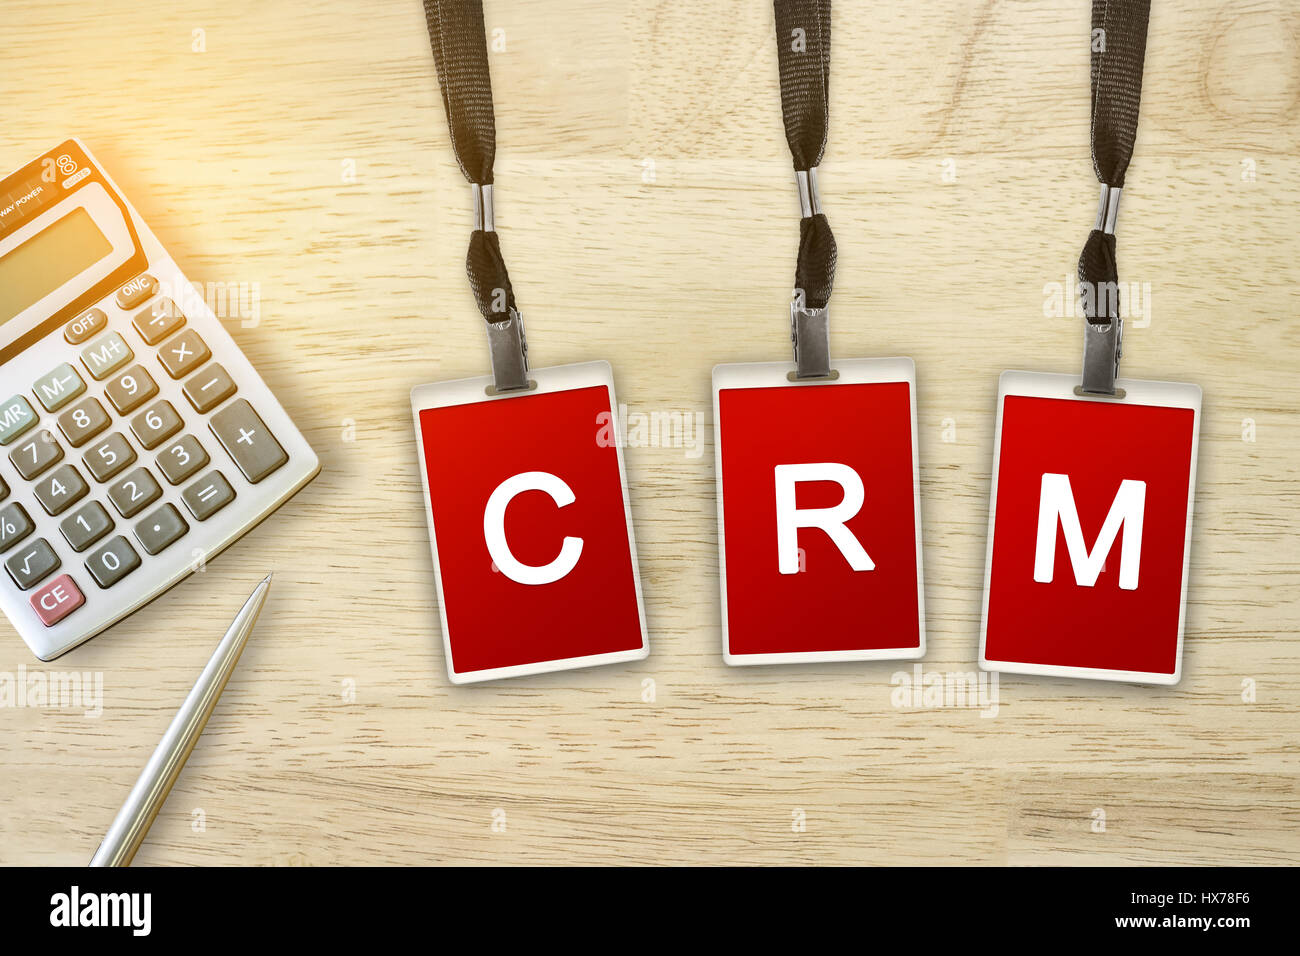 CRM or Customer Relationship Management word on red badge with soft light vintage effect - Stock Image